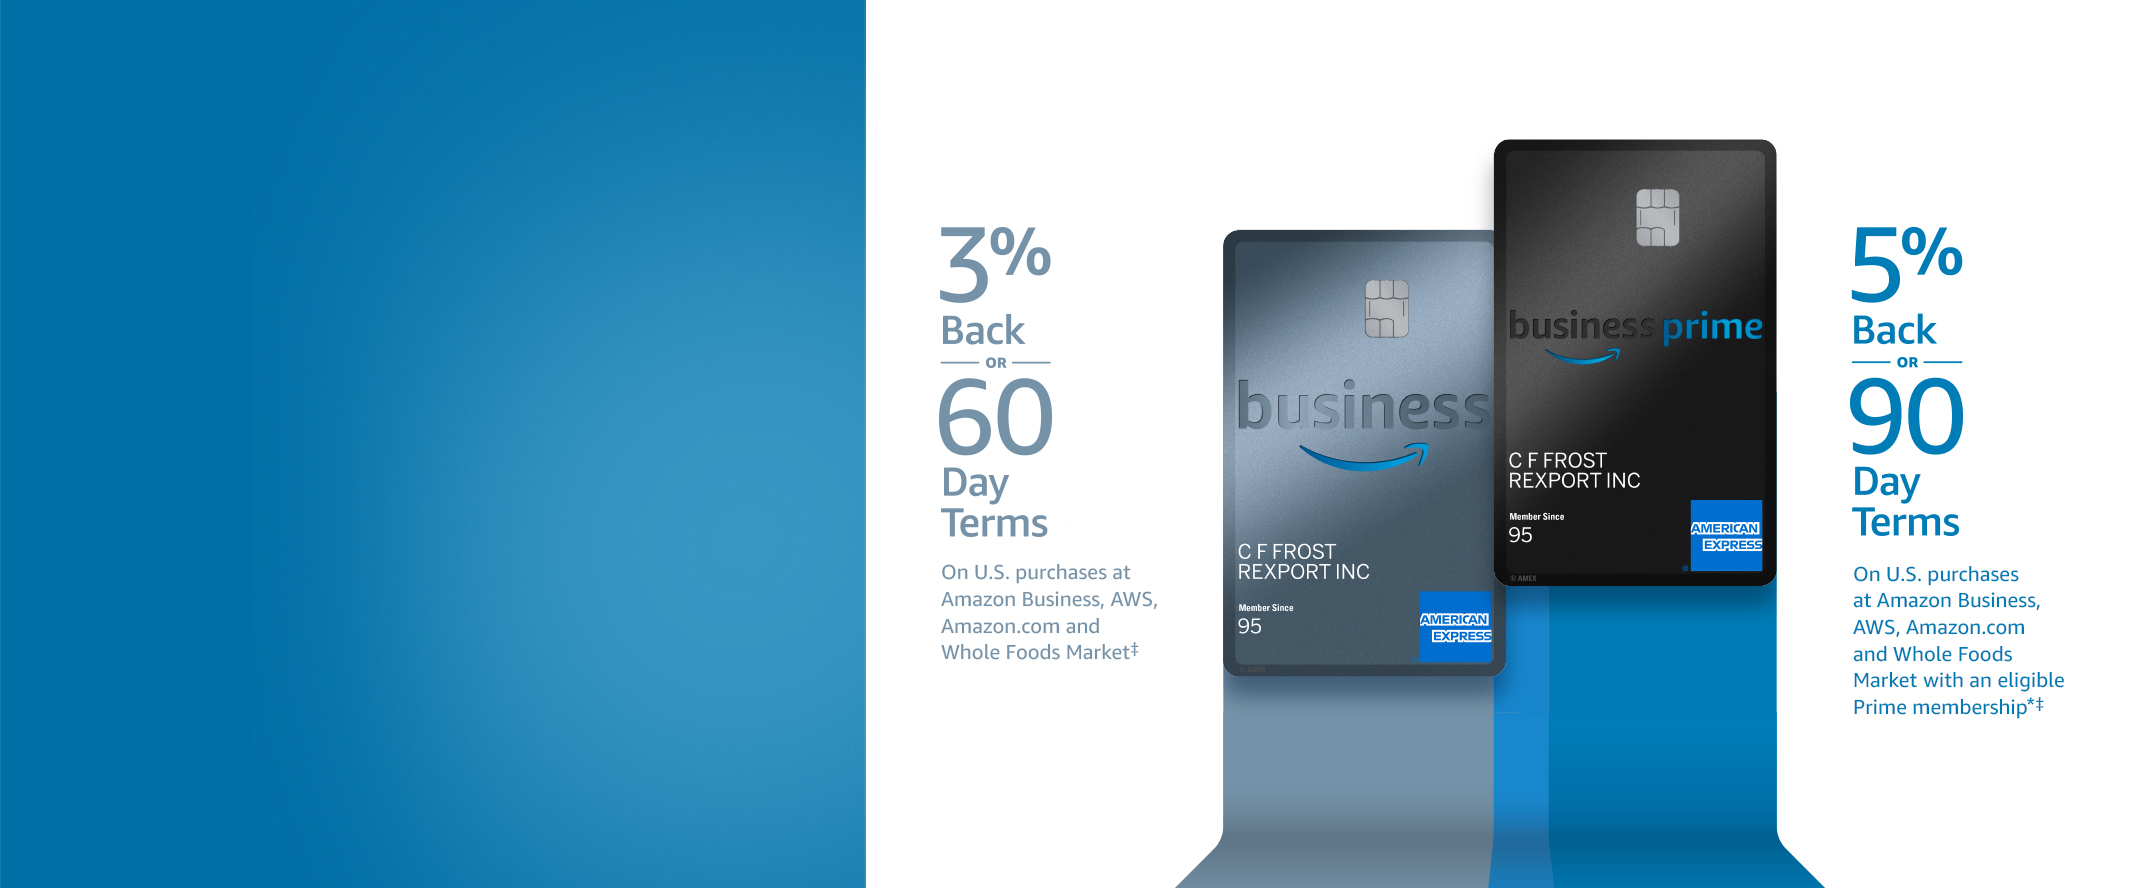 amazoncom amazon business american express card credit card offers - Easy Business Credit Cards No Personal Guarantee